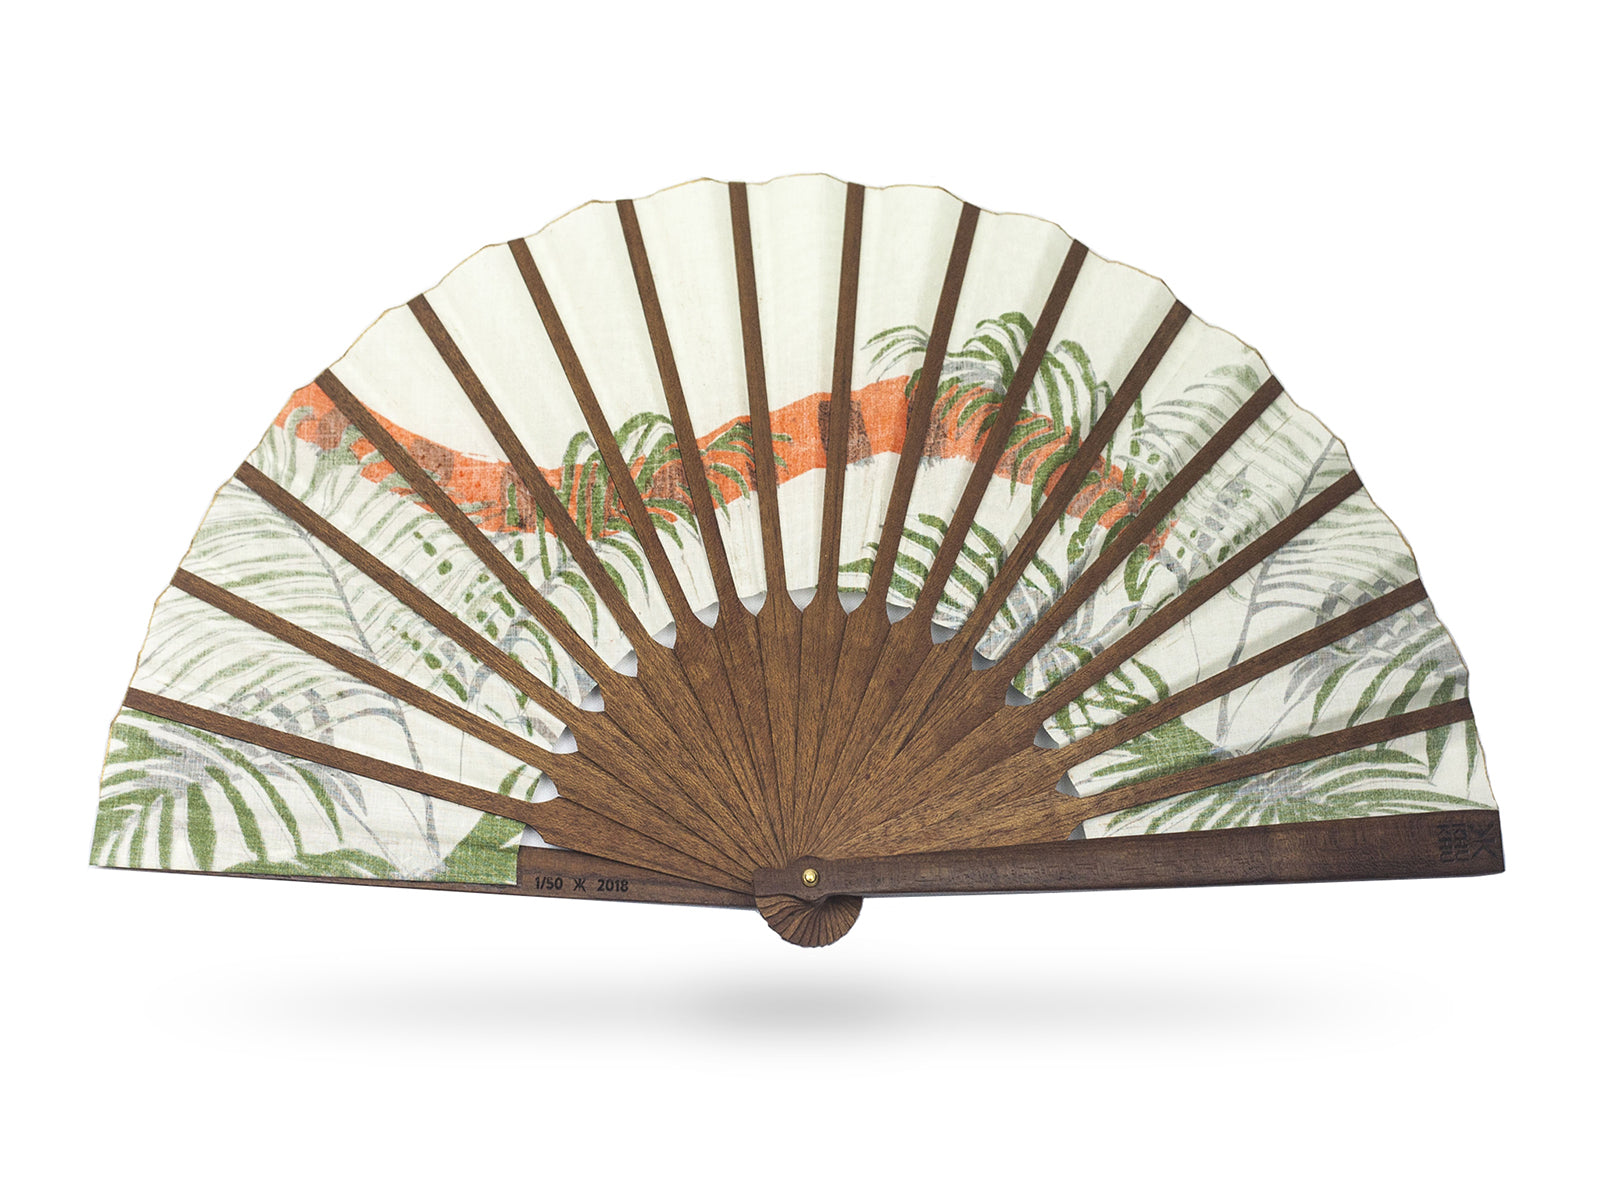 View of the back of Khu Khu Indian Tiger luxury hand-fan. Hand screen printed orange and black Indian Tiger tail swishes through tropical green fern leaves with cream background mounted with premium cherry wood in exclusive Khu Khu shape with polished brass rivets. .